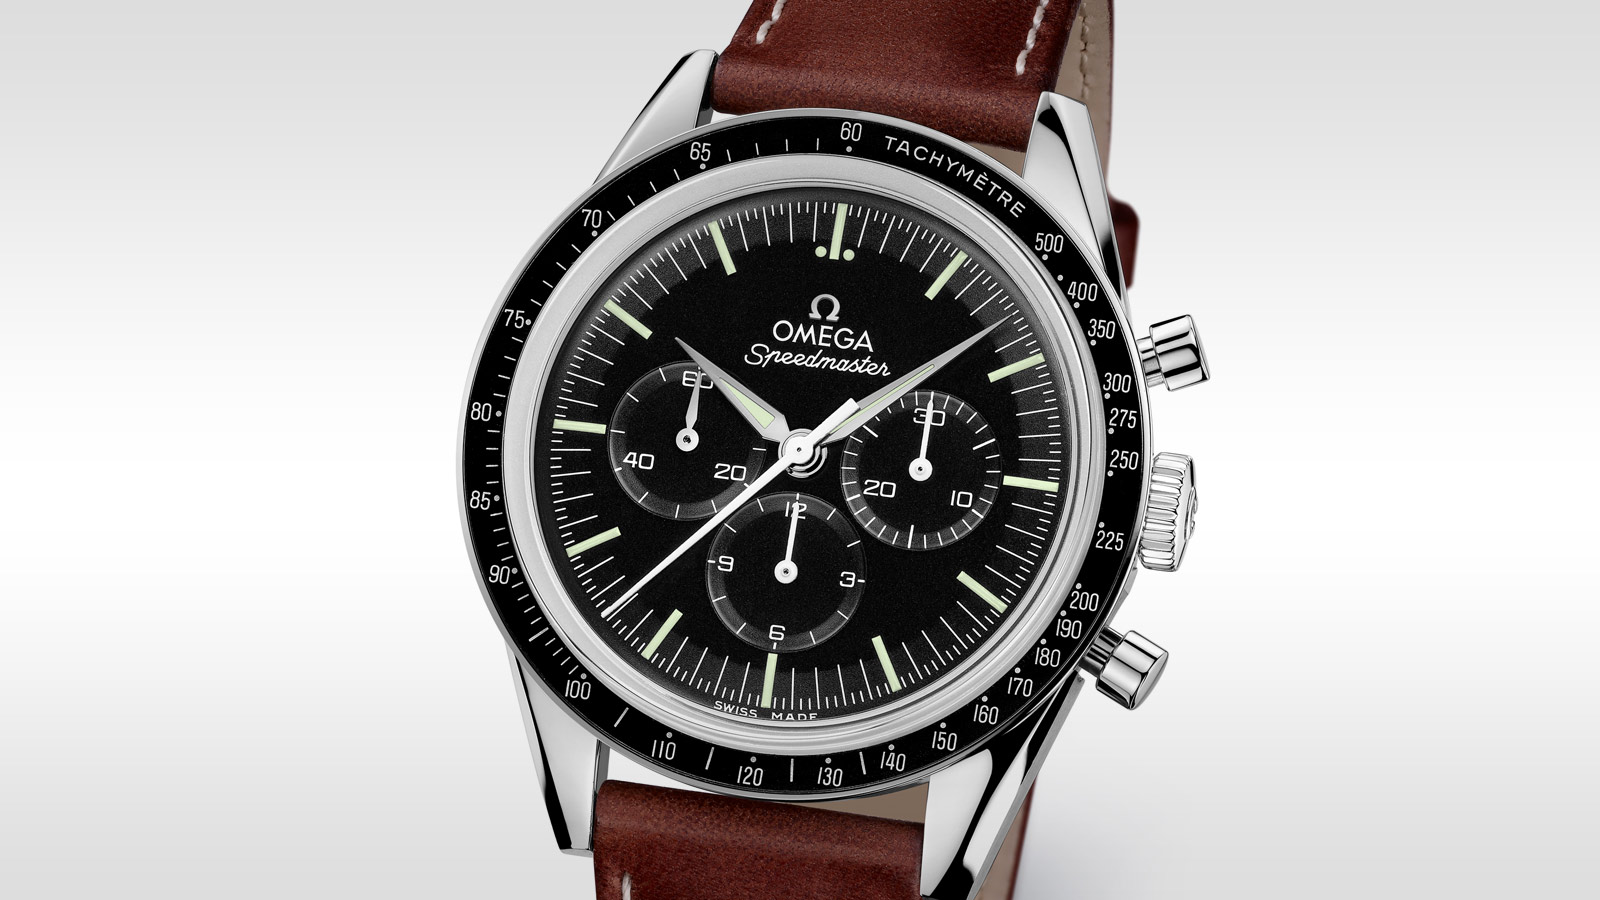 Speedmaster Moonwatch Moonwatch Chronograph 39.7 mm - 311.32.40.30.01.001 - View 2